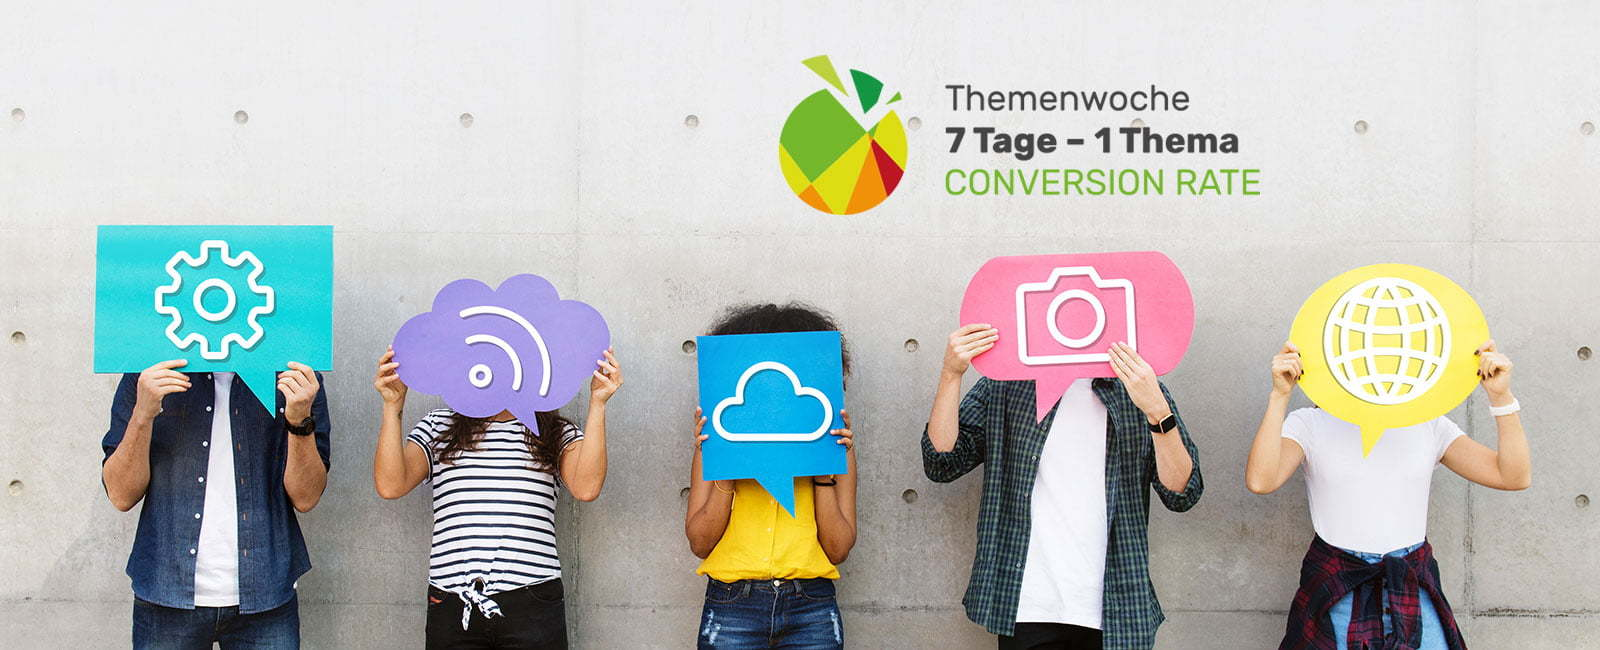 econsor Themenwoche Conversion Rate Call to action